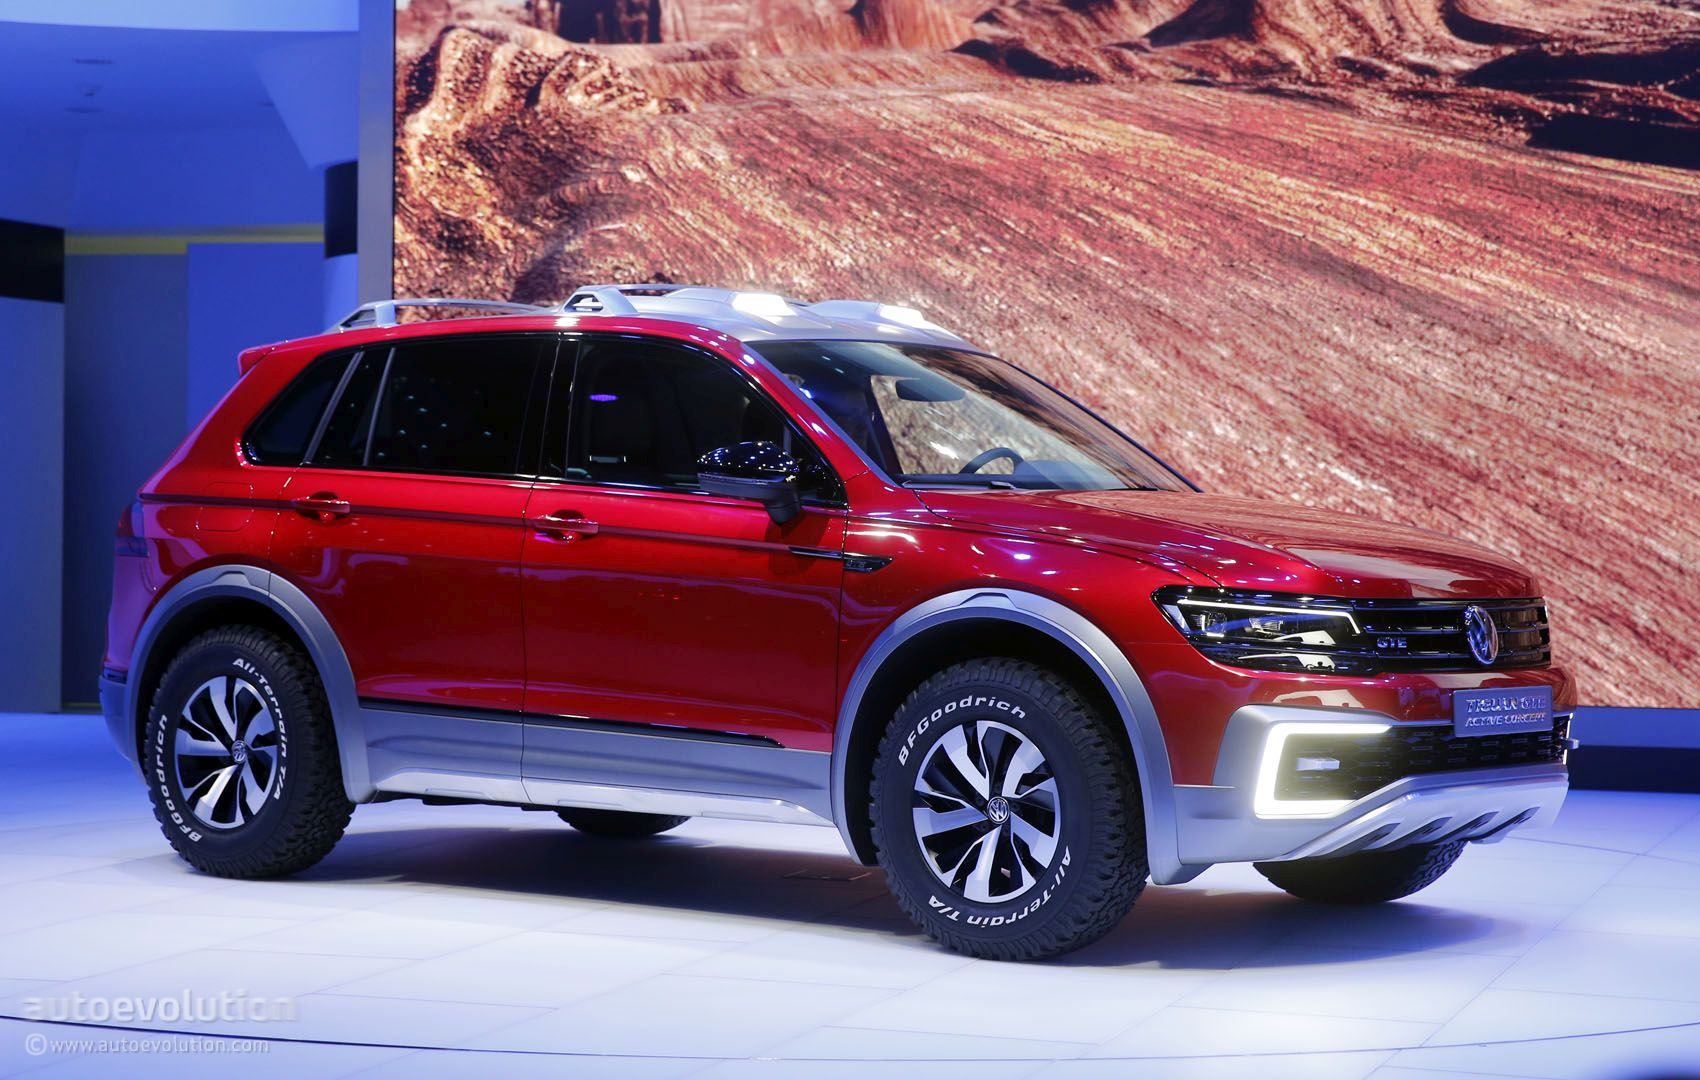 2017 Volvo Xc90 Hybrid >> Volkswagen Tiguan GTE Active Concept Is a RWD-Based Sporty ...